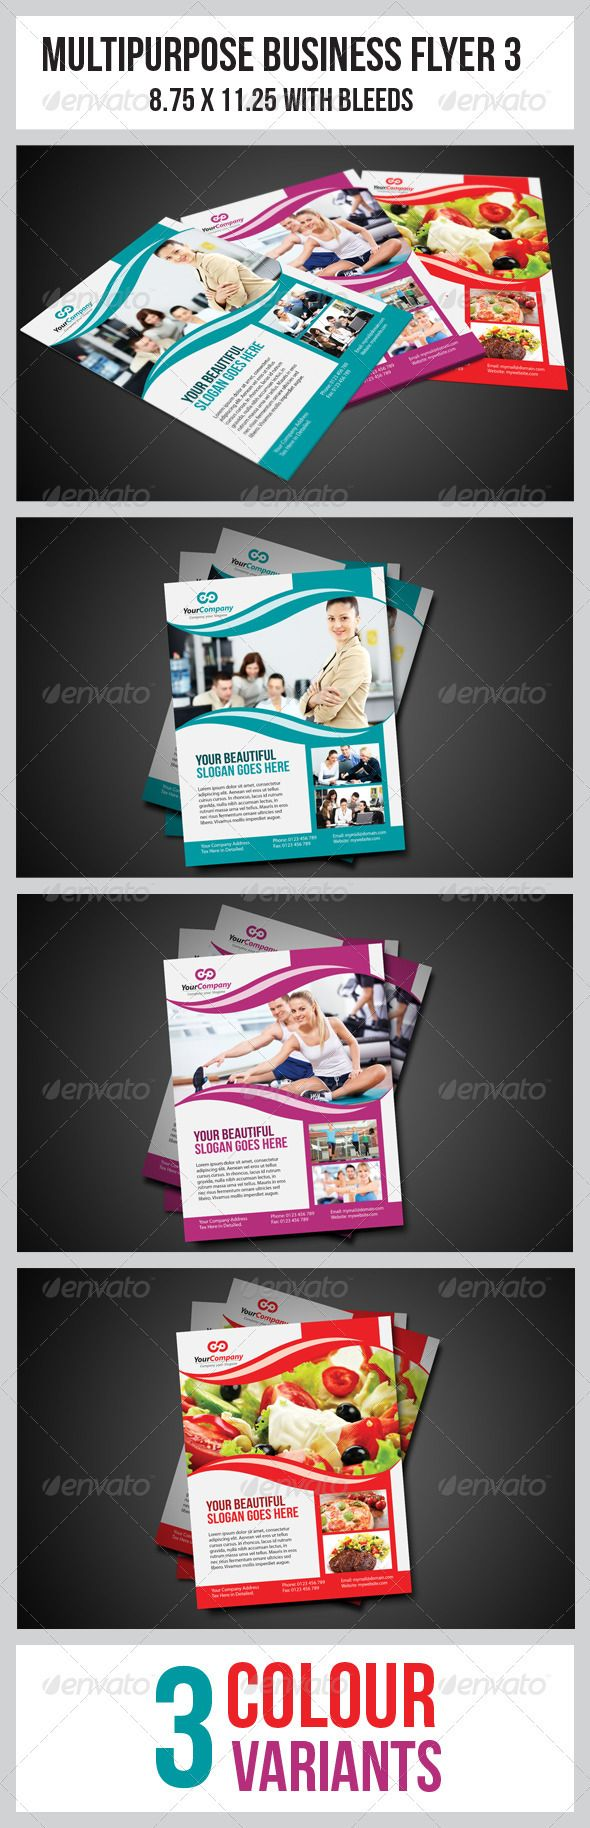 Multipurpose Business Flyer 3 | More Business flyers, Flyer ...